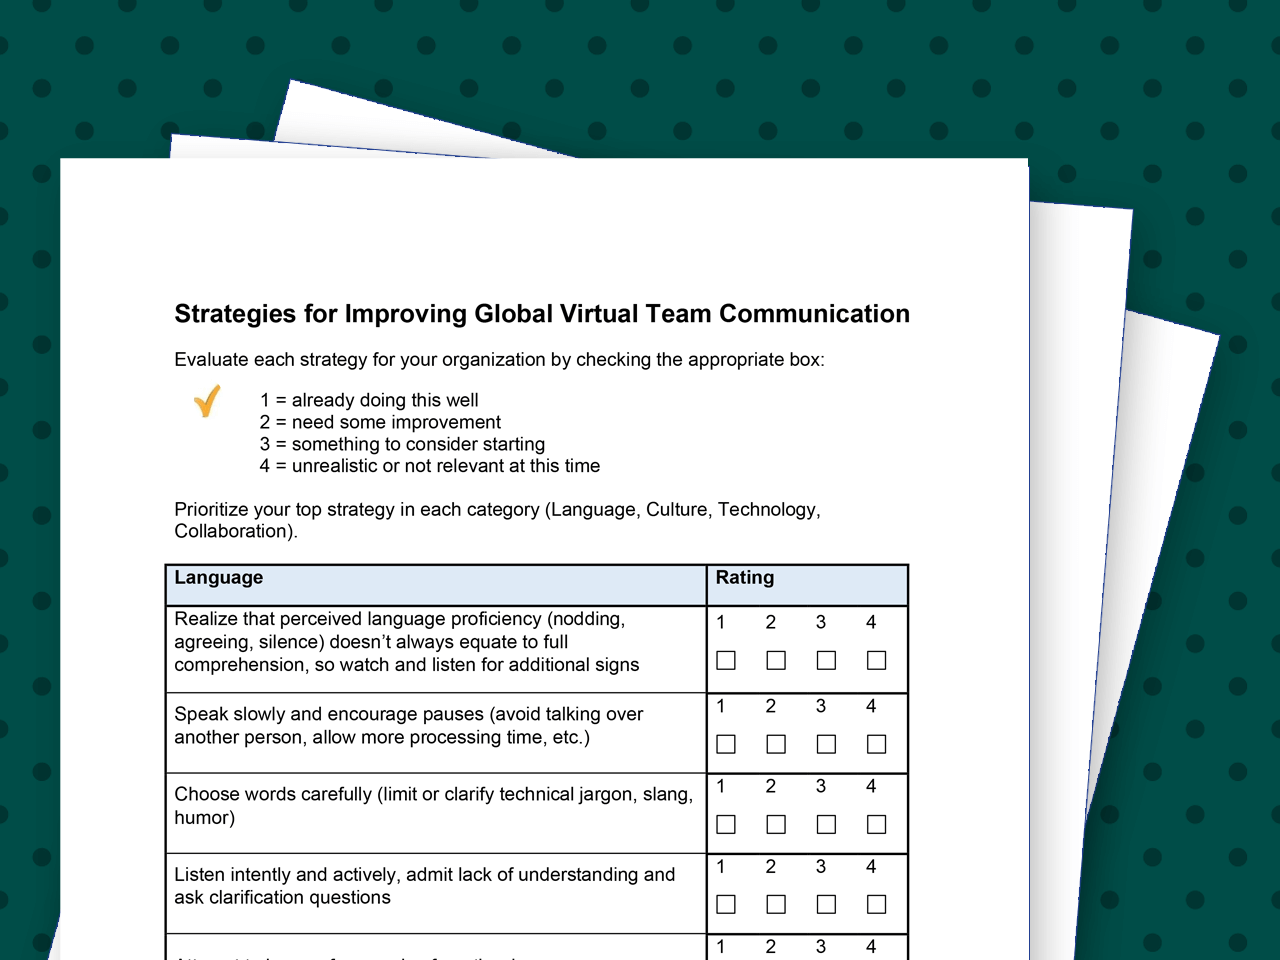 Strategies for Improving Global Virtual Team Communication